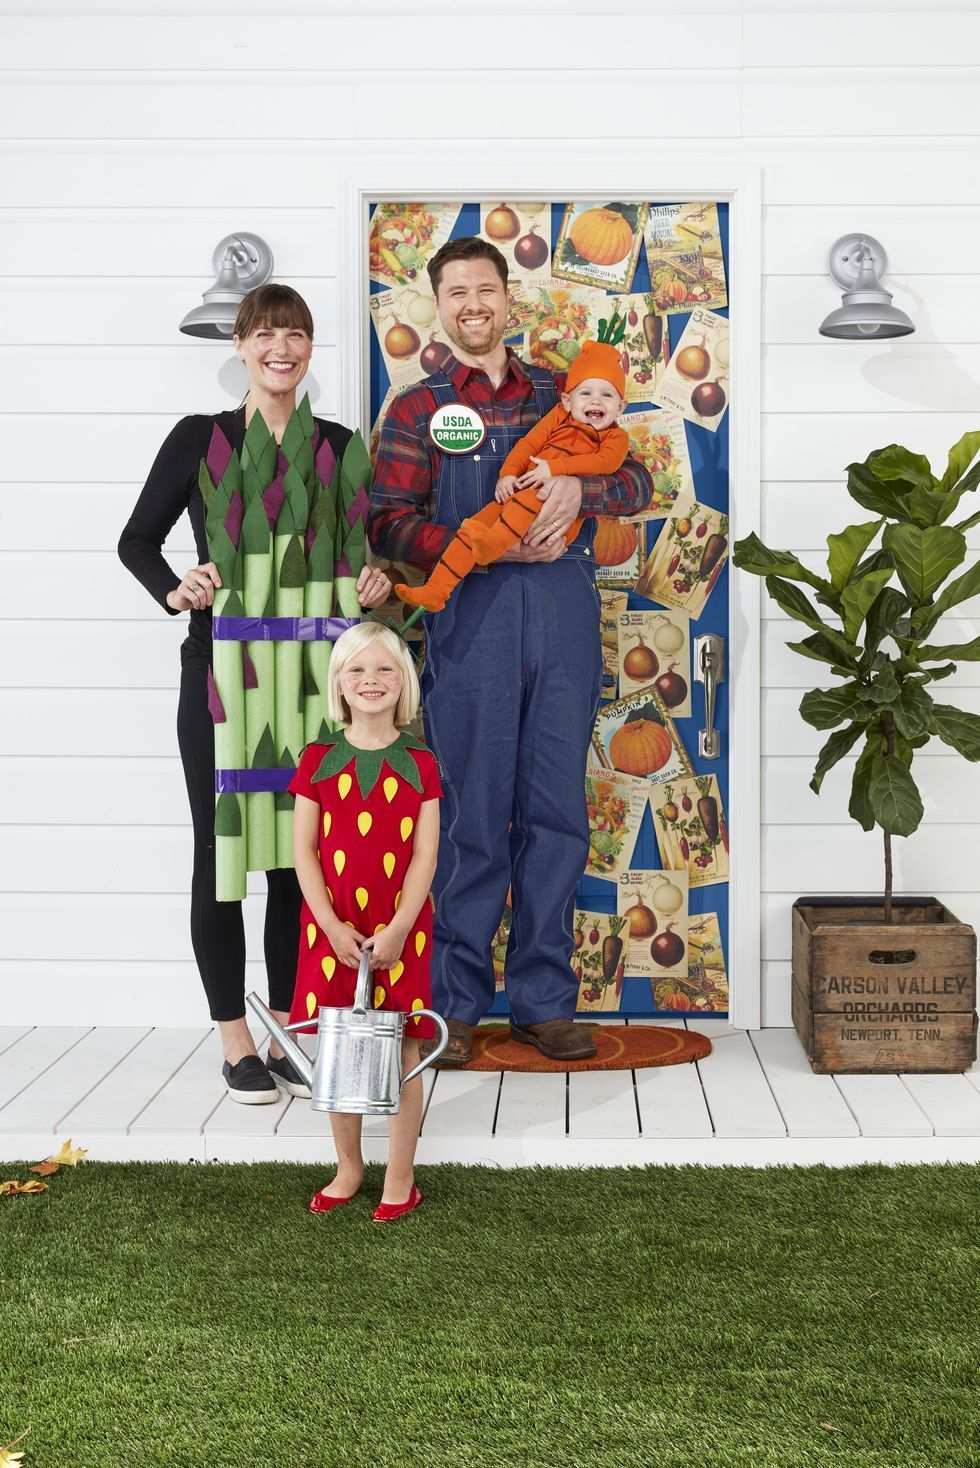 Halloween Costumes Near Here.65 Best Halloween Costumes Of All Time Top Costume Ideas Ever